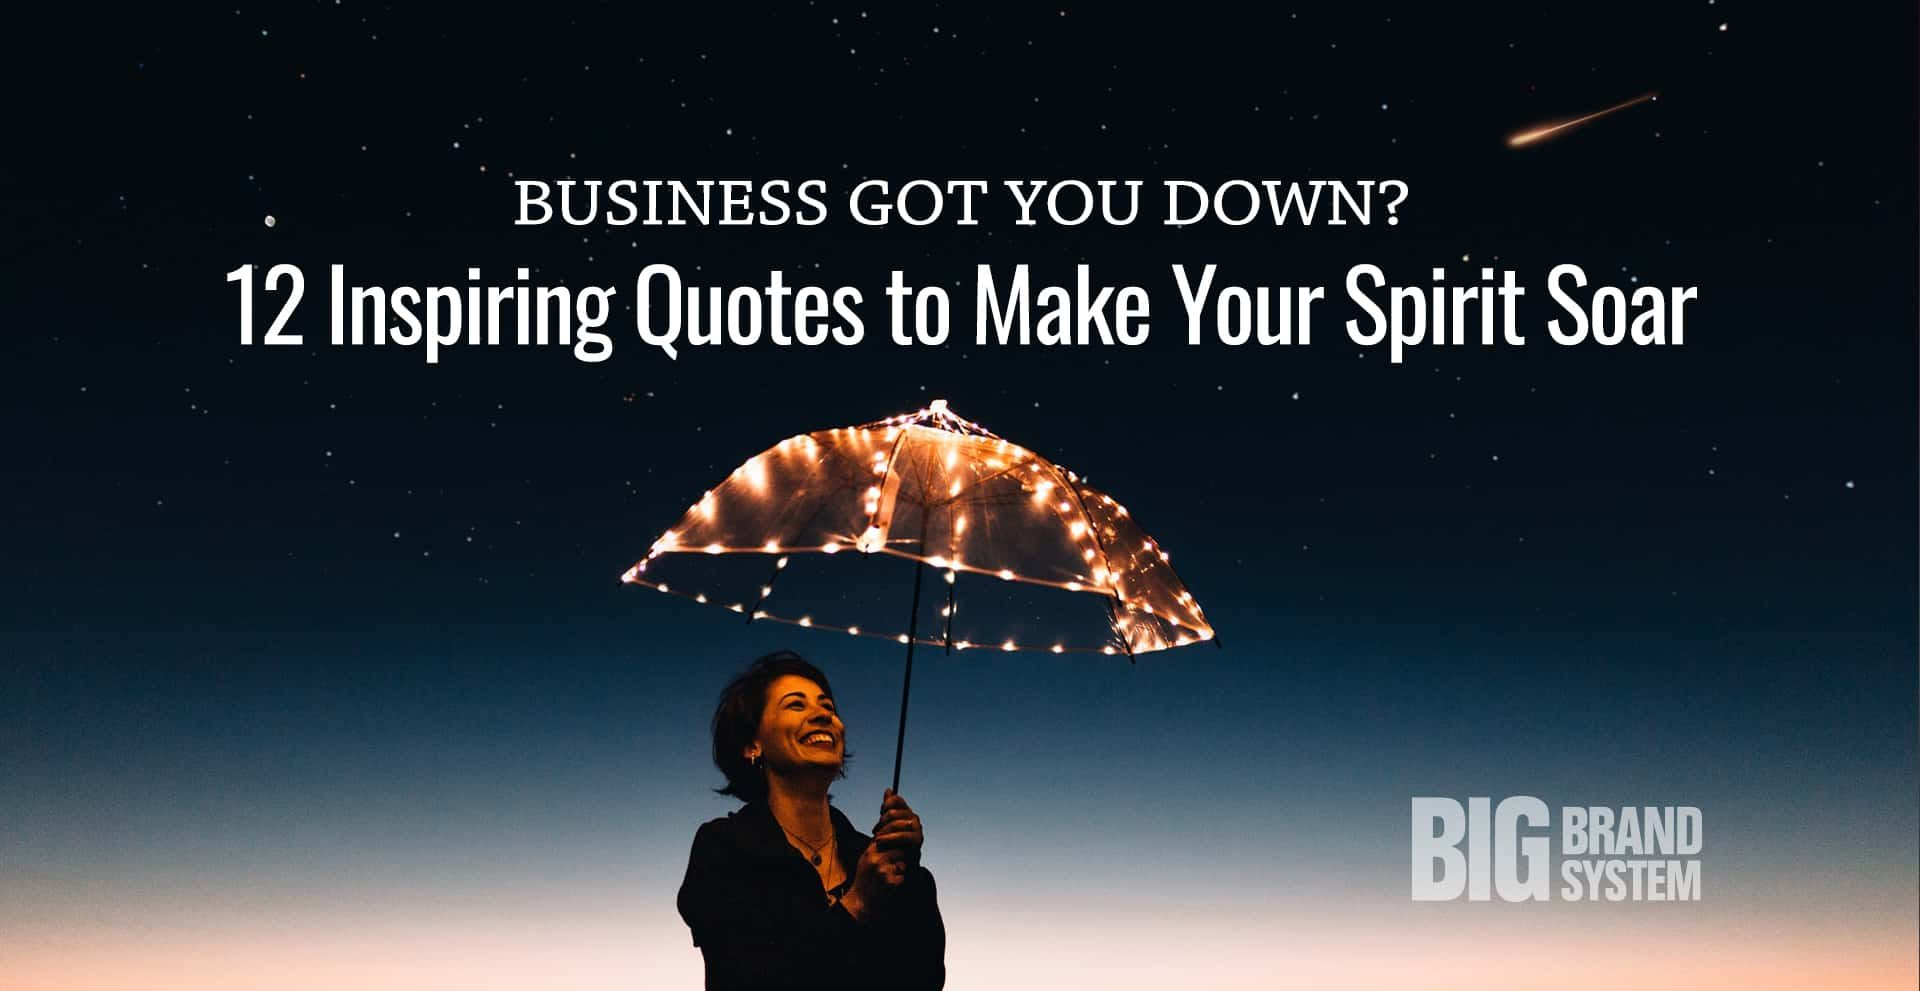 Inspiring business quotes to keep you going!